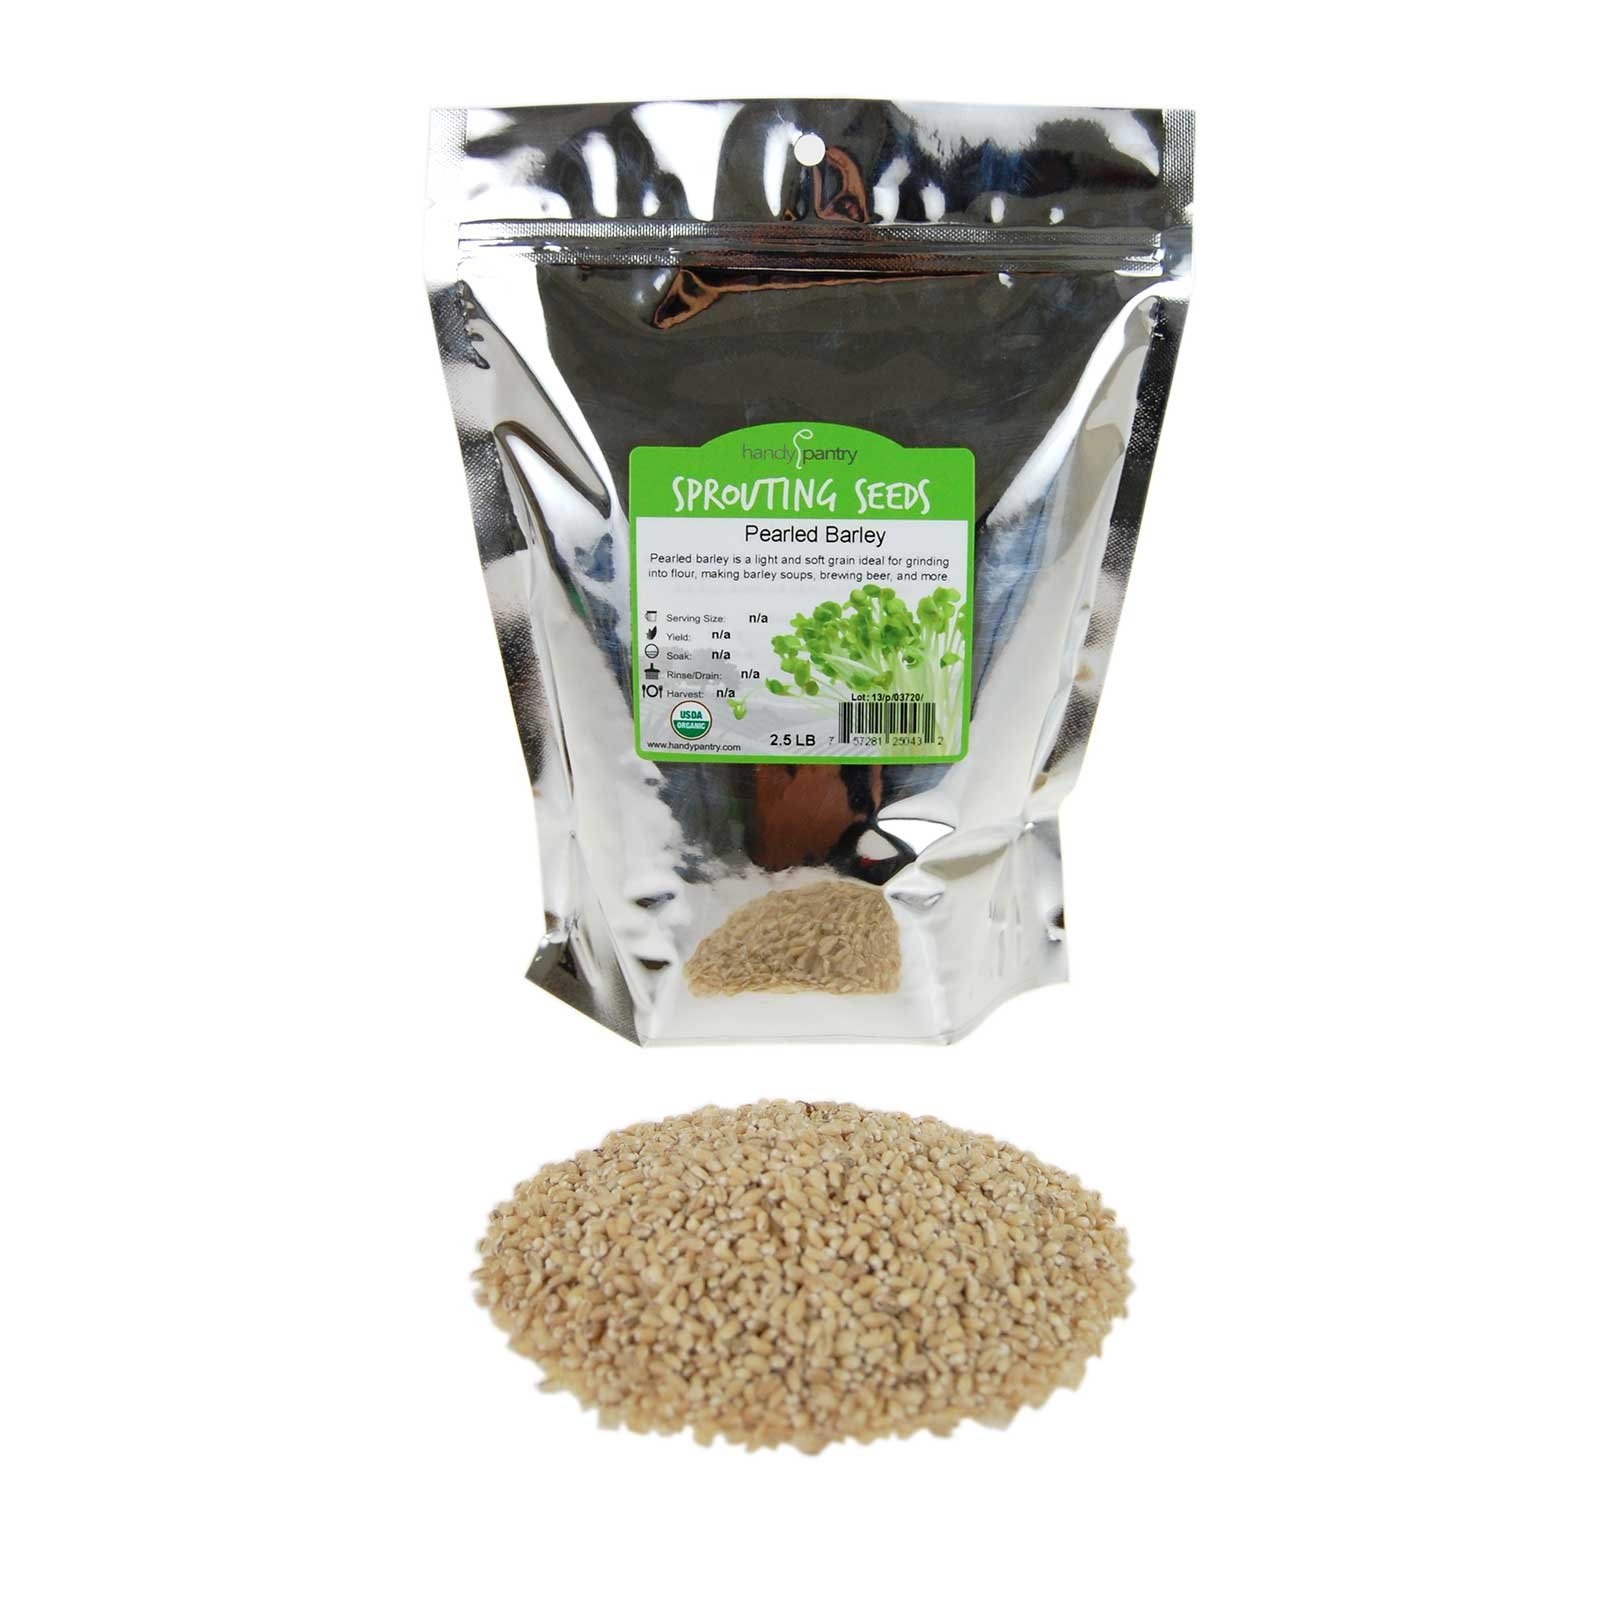 Organic Pearled Barley Groats (Hulled) - 2.5 Lb Re-Sealable Package - Barley Grains for Flour, Bread, Beer Making Animal Feed, Food Storage & More by Handy Pantry